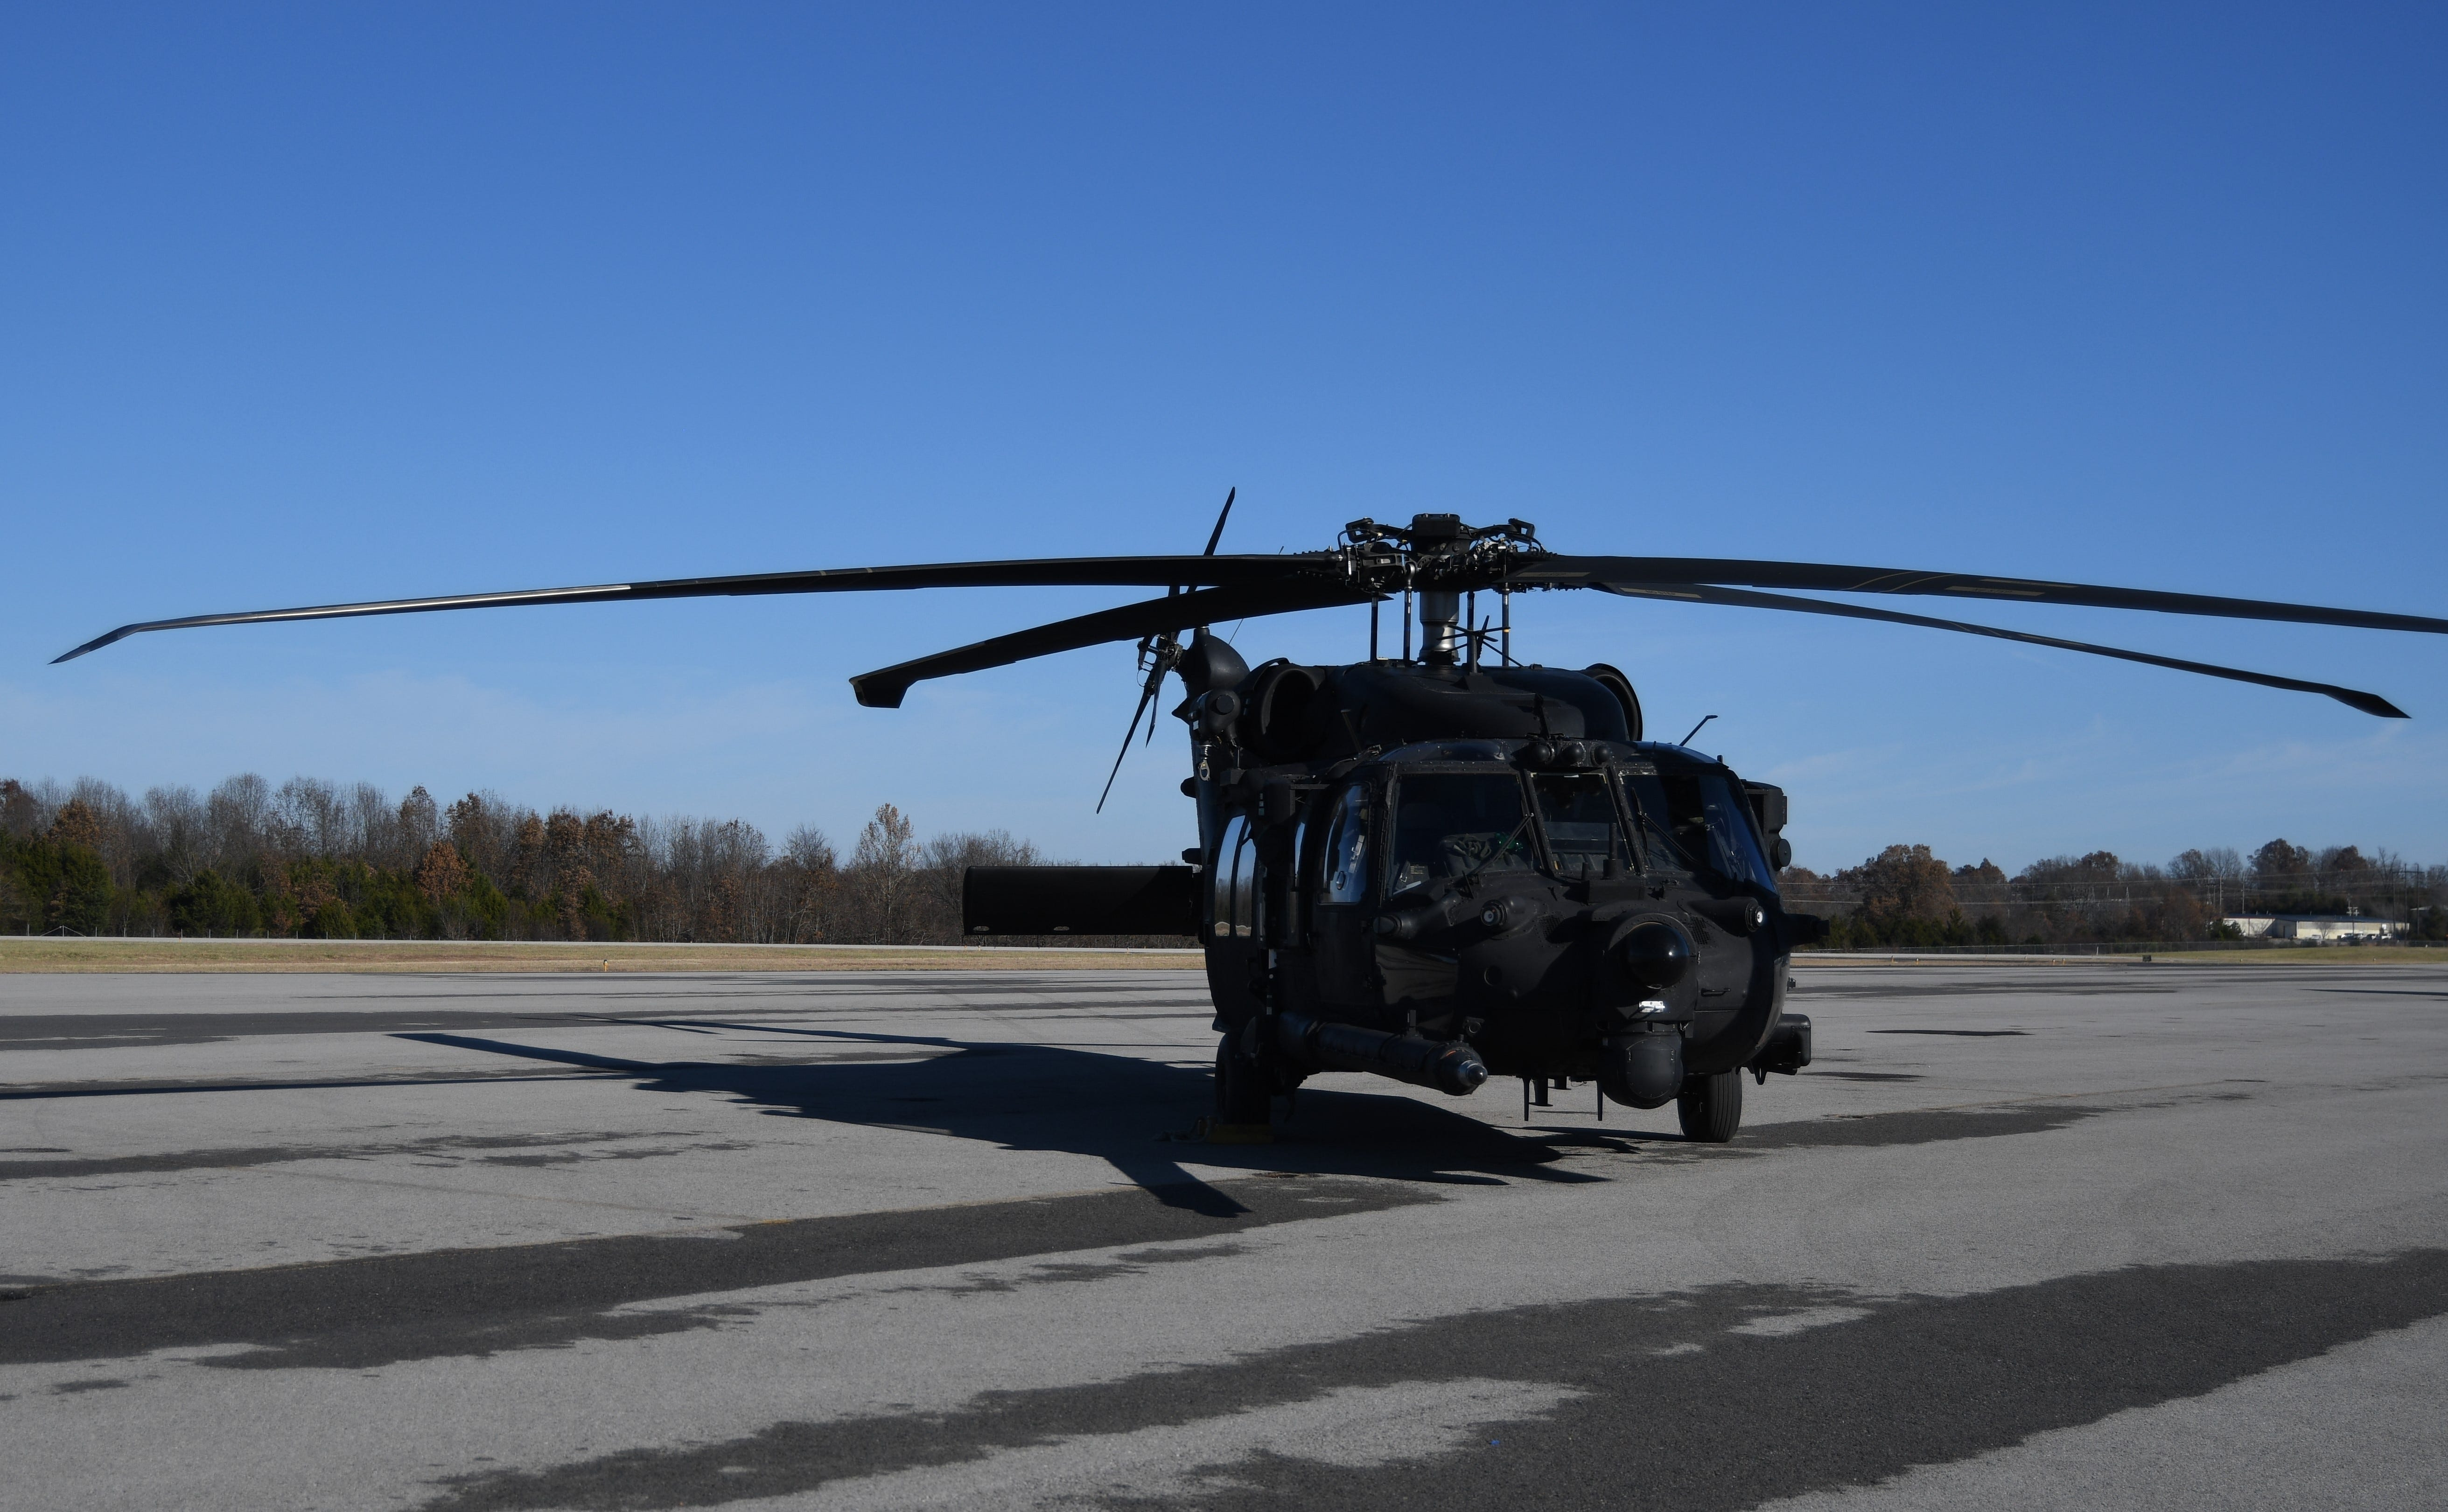 This MH-60M Black hawk helicopter touched down at the Baxter County Airport in Midway on Nov. 25. The helicopter's crew visited the Twin Lakes Area to pick up 49 camouflaged quilts made by Mountain Home resident Sandra Kiphuth.